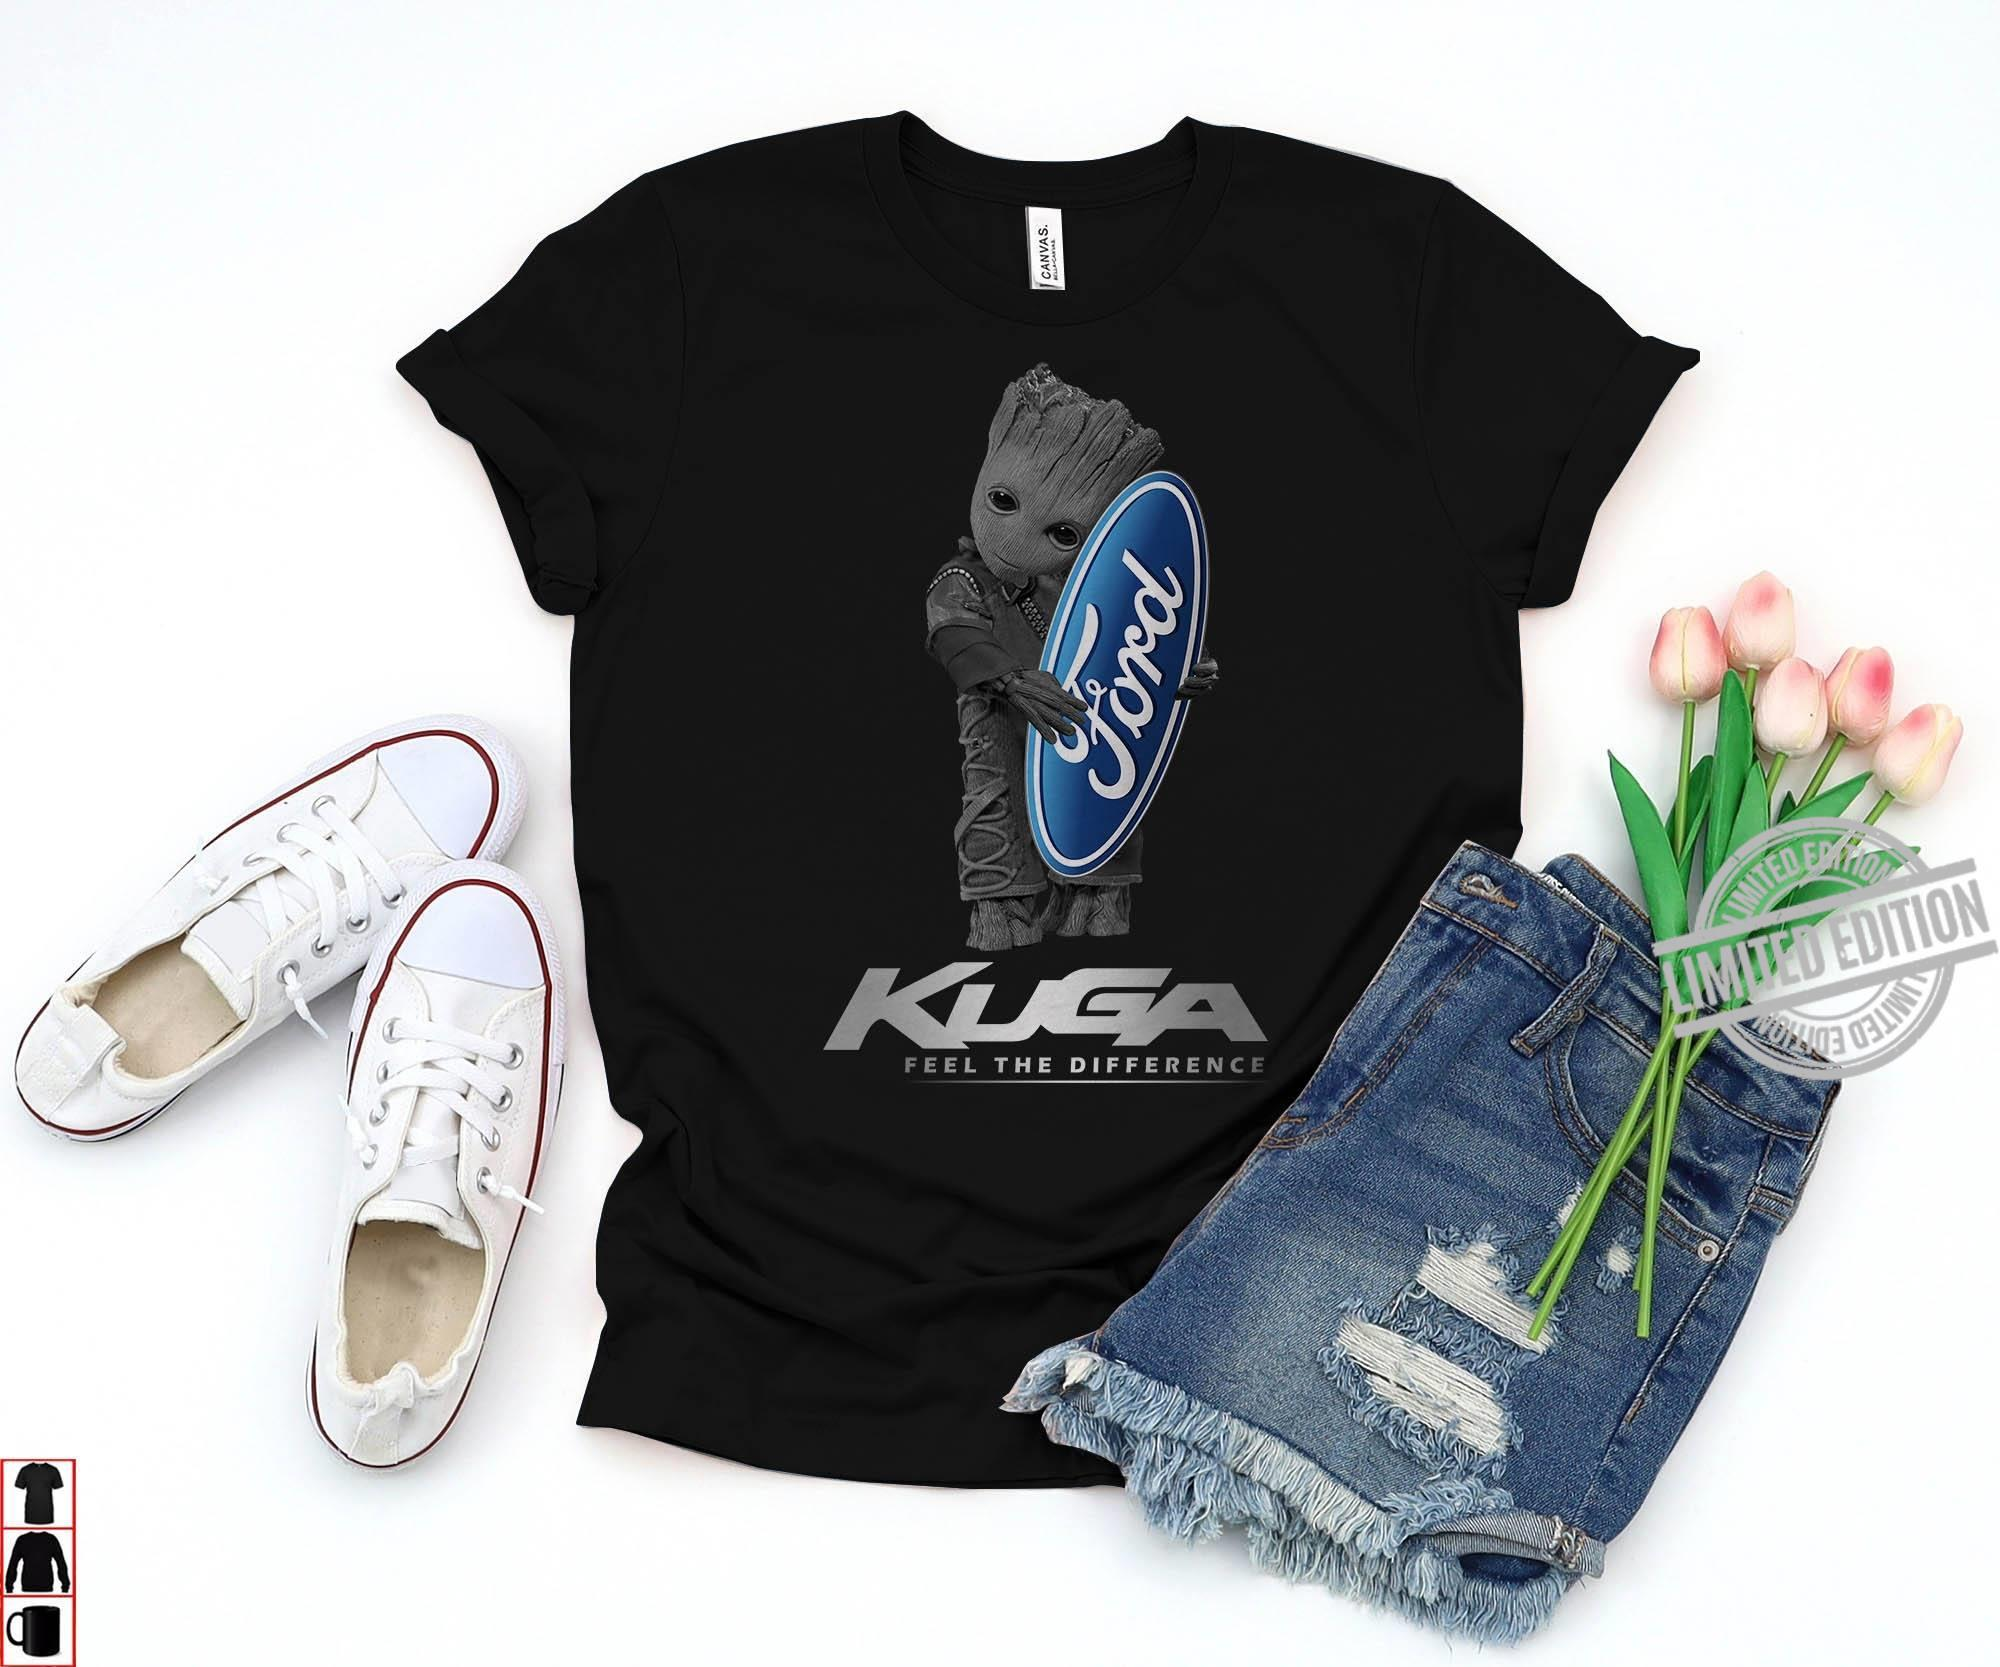 Ford Kuga Feel The Diffence Shirt